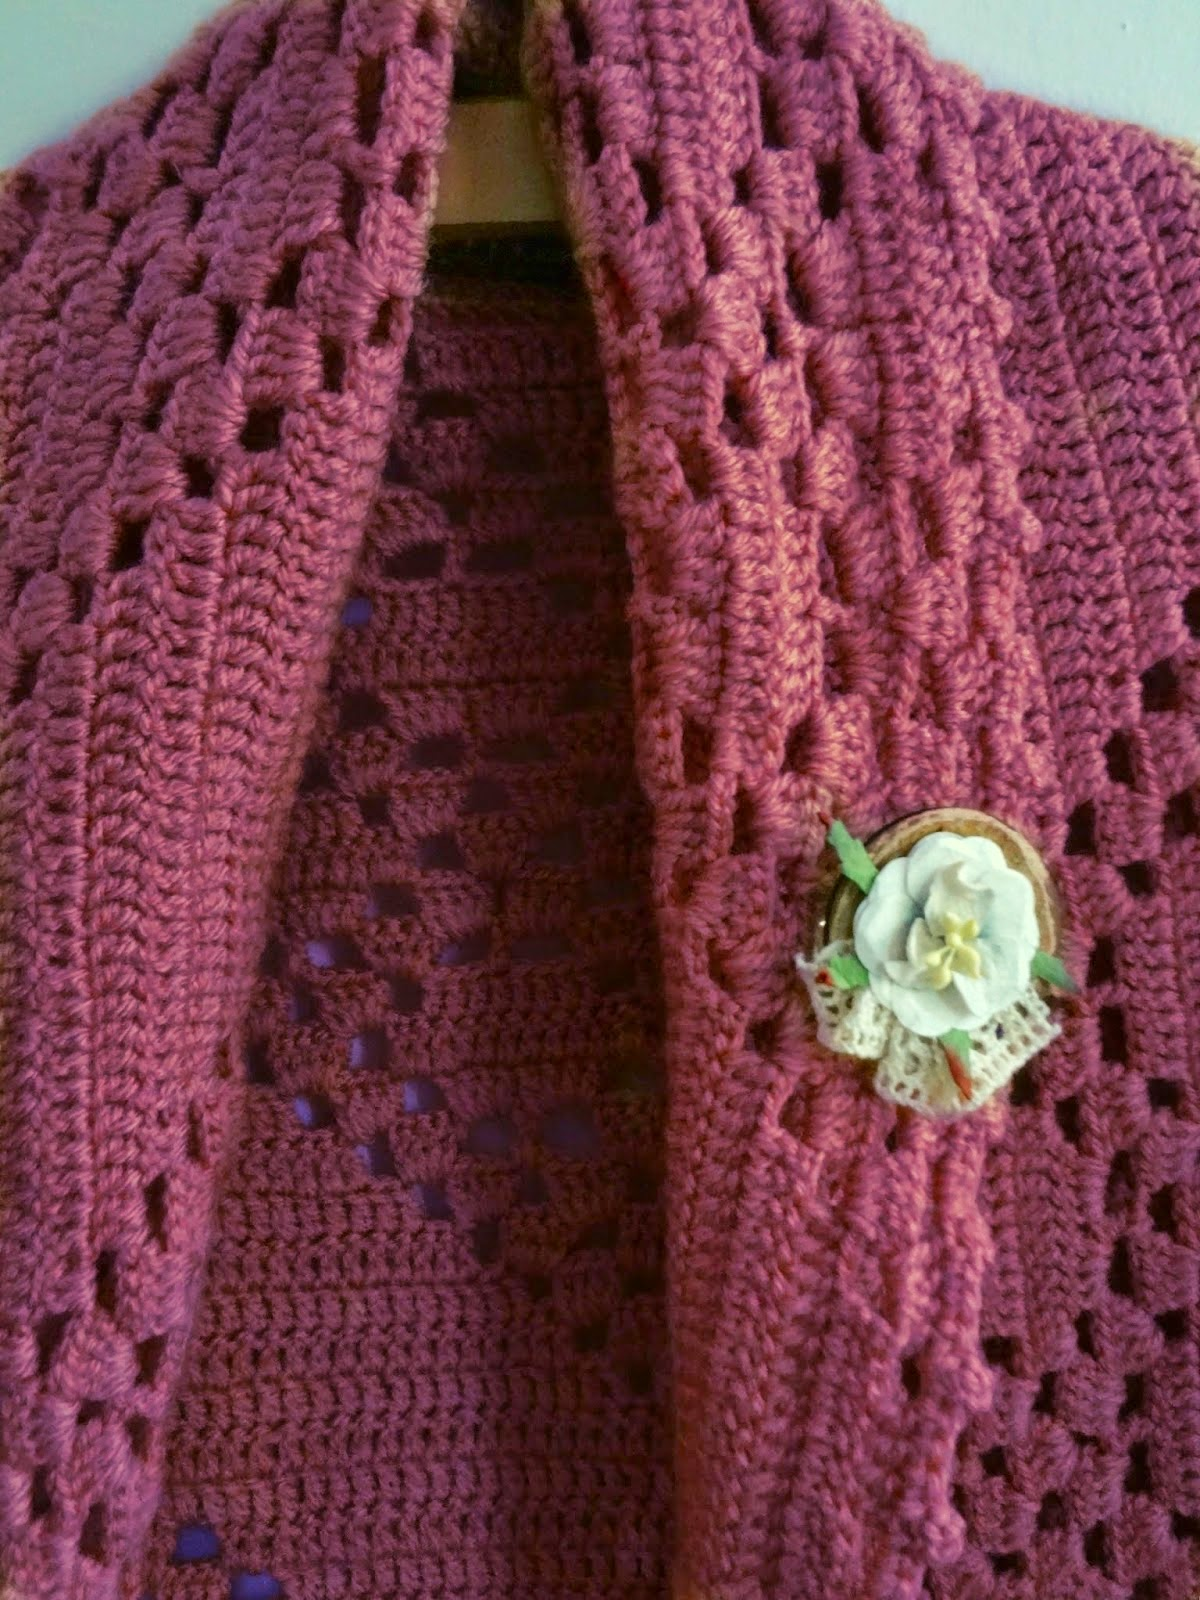 http://thelittletreasures.blogspot.com/2014/10/make-rustic-button-brooch.html